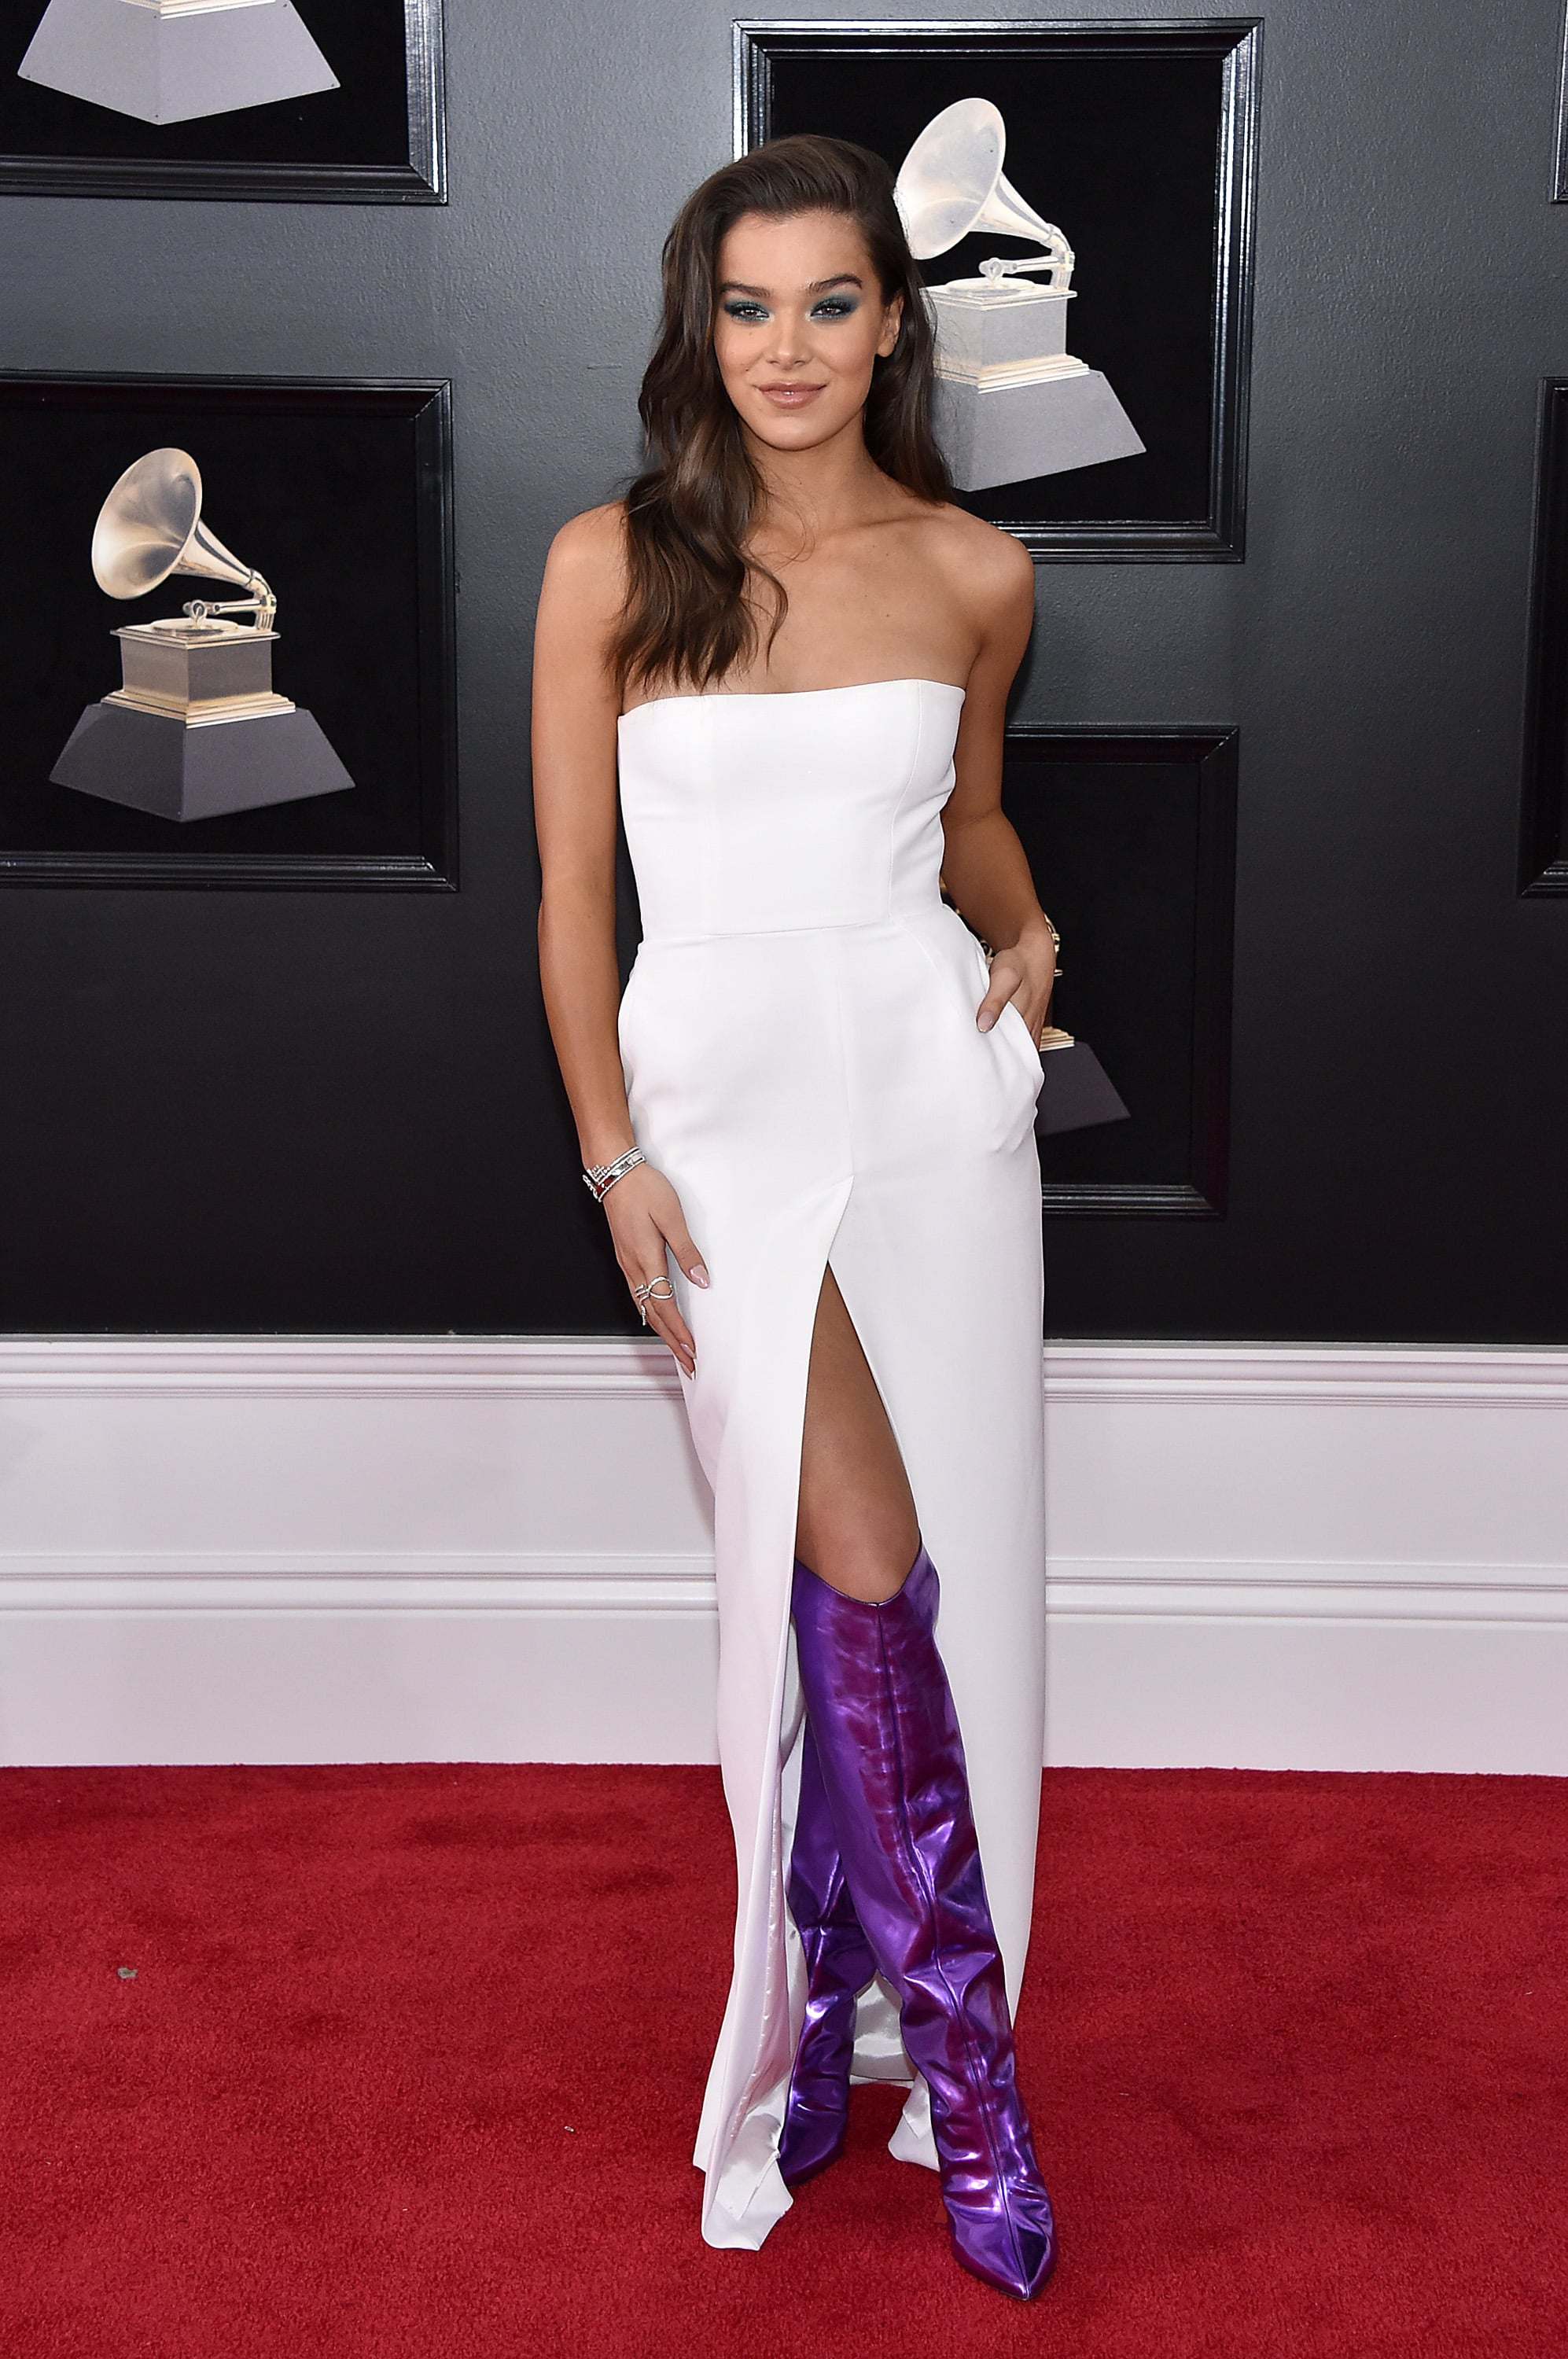 Purple Boots at the Grammys 2018